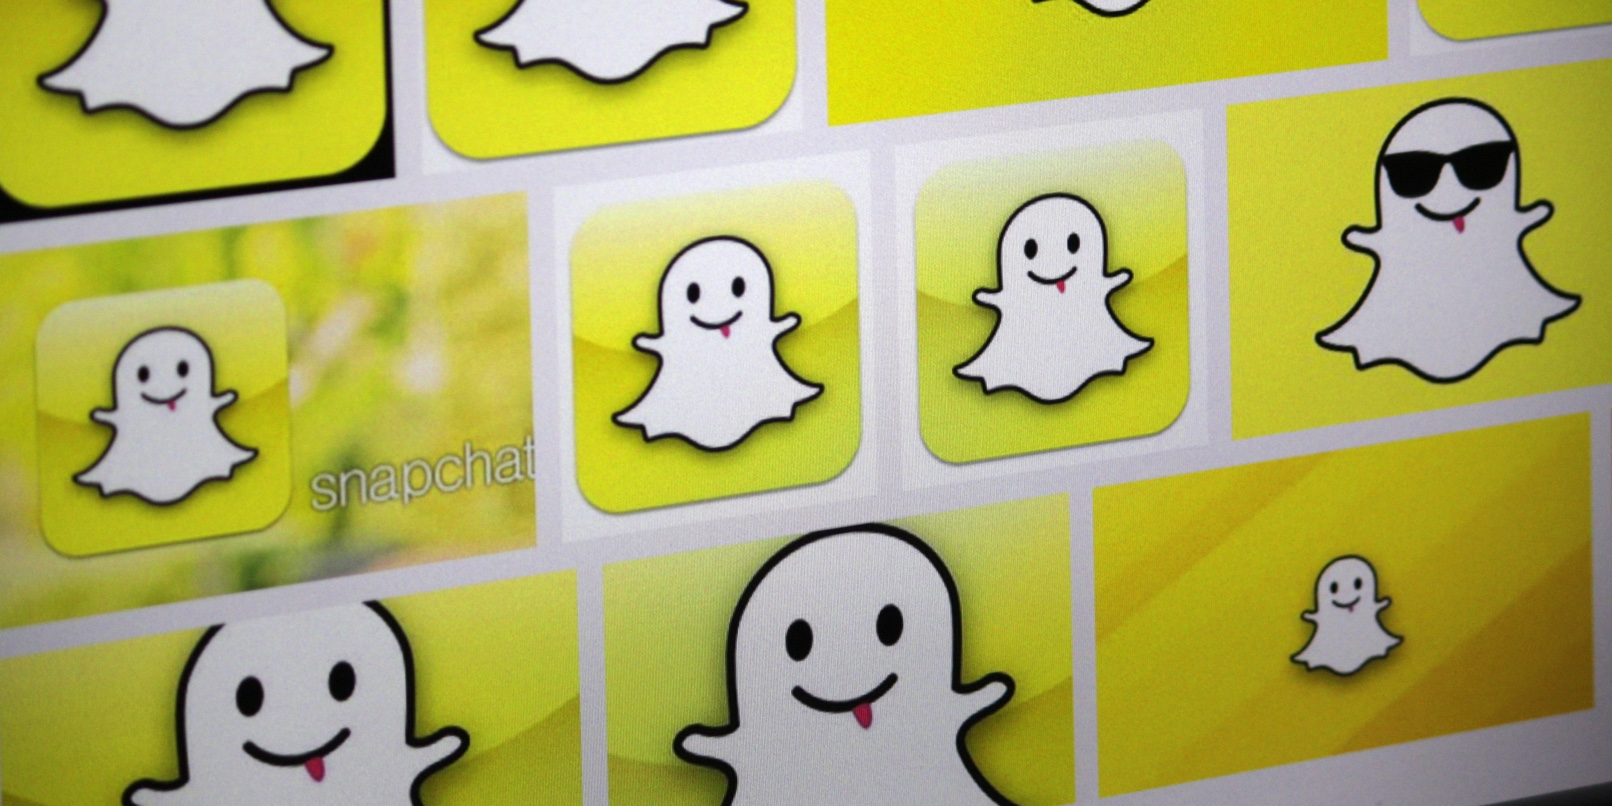 You might soon be able to subscribe to your favorite channels on Snapchat